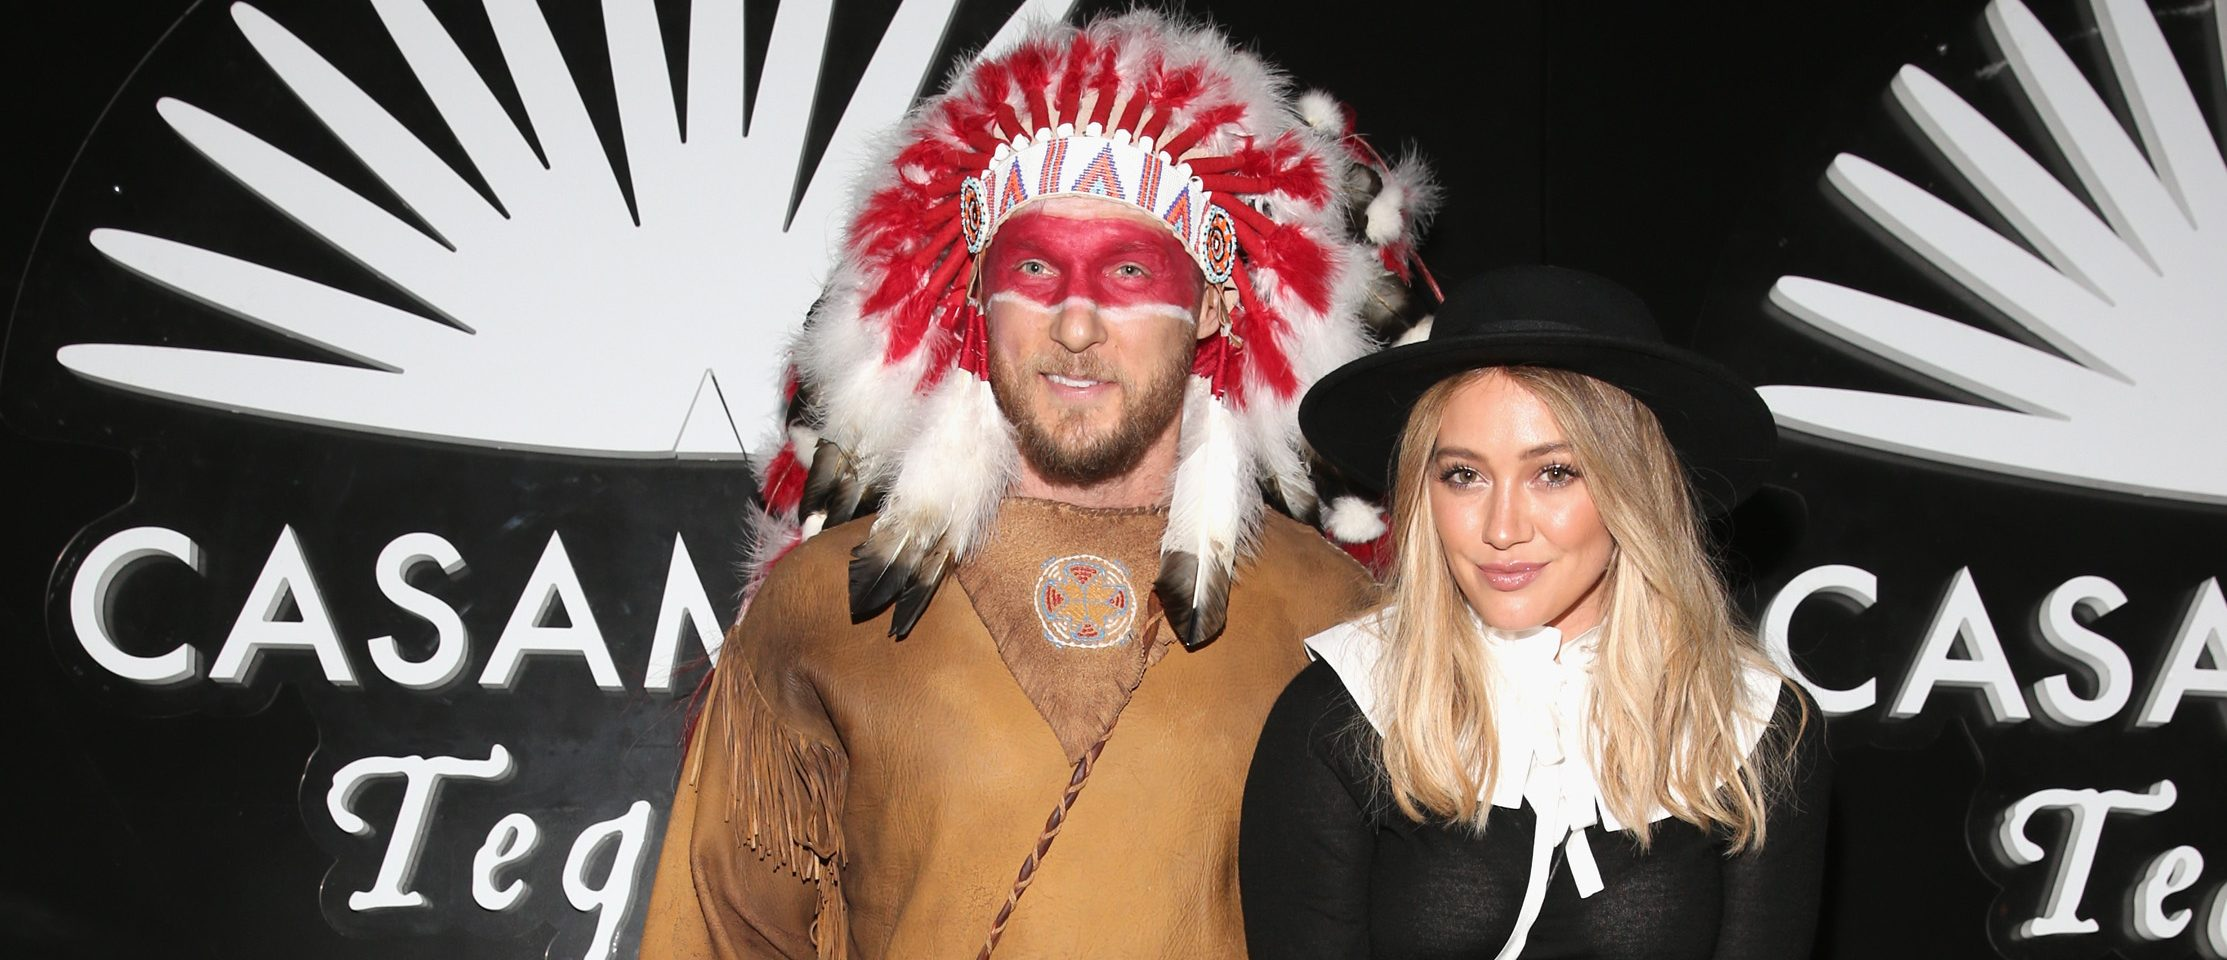 BEVERLY HILLS, CA - OCTOBER 28: Actress Hilary Duff (R) and Jason Walsh arrive to the Casamigos Halloween Party at a private residence on October 28, 2016 in Beverly Hills, California. (Photo by Todd Williamson/Getty Images for Casamigos Tequila)